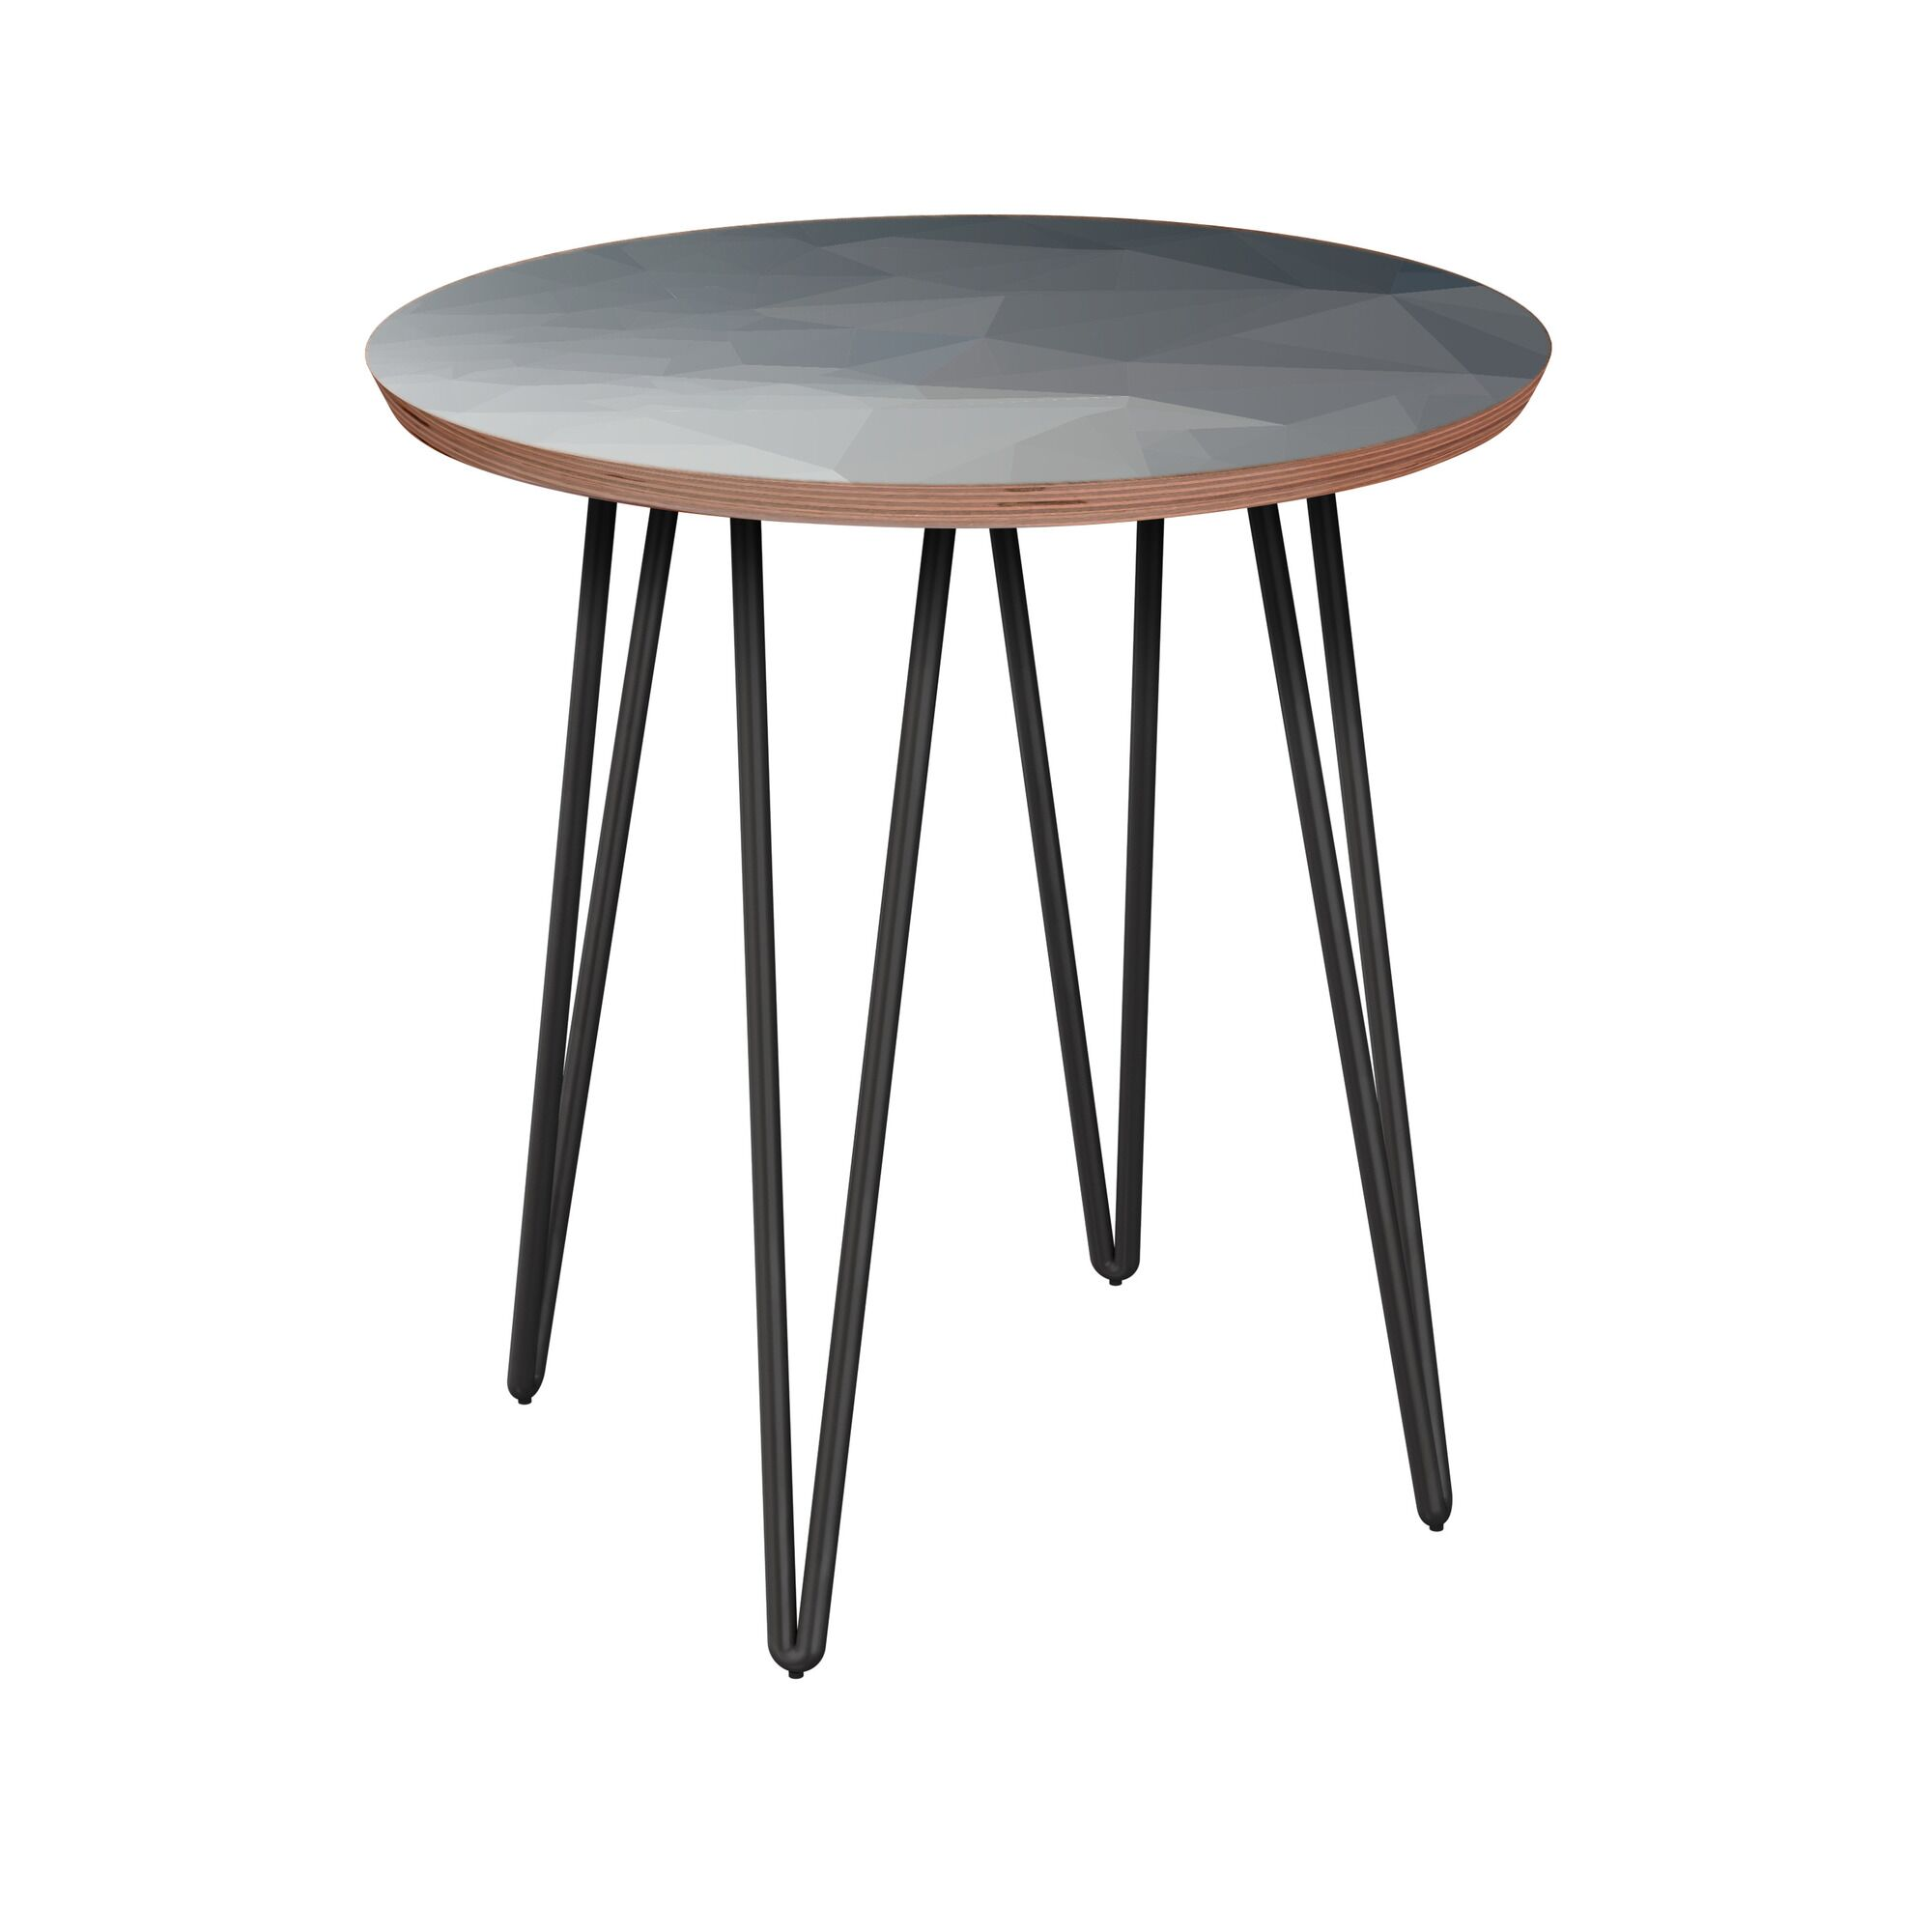 Rauscher End Table Table Base Color: Black, Table Top Boarder Color: Walnut, Table Top Color: Blue